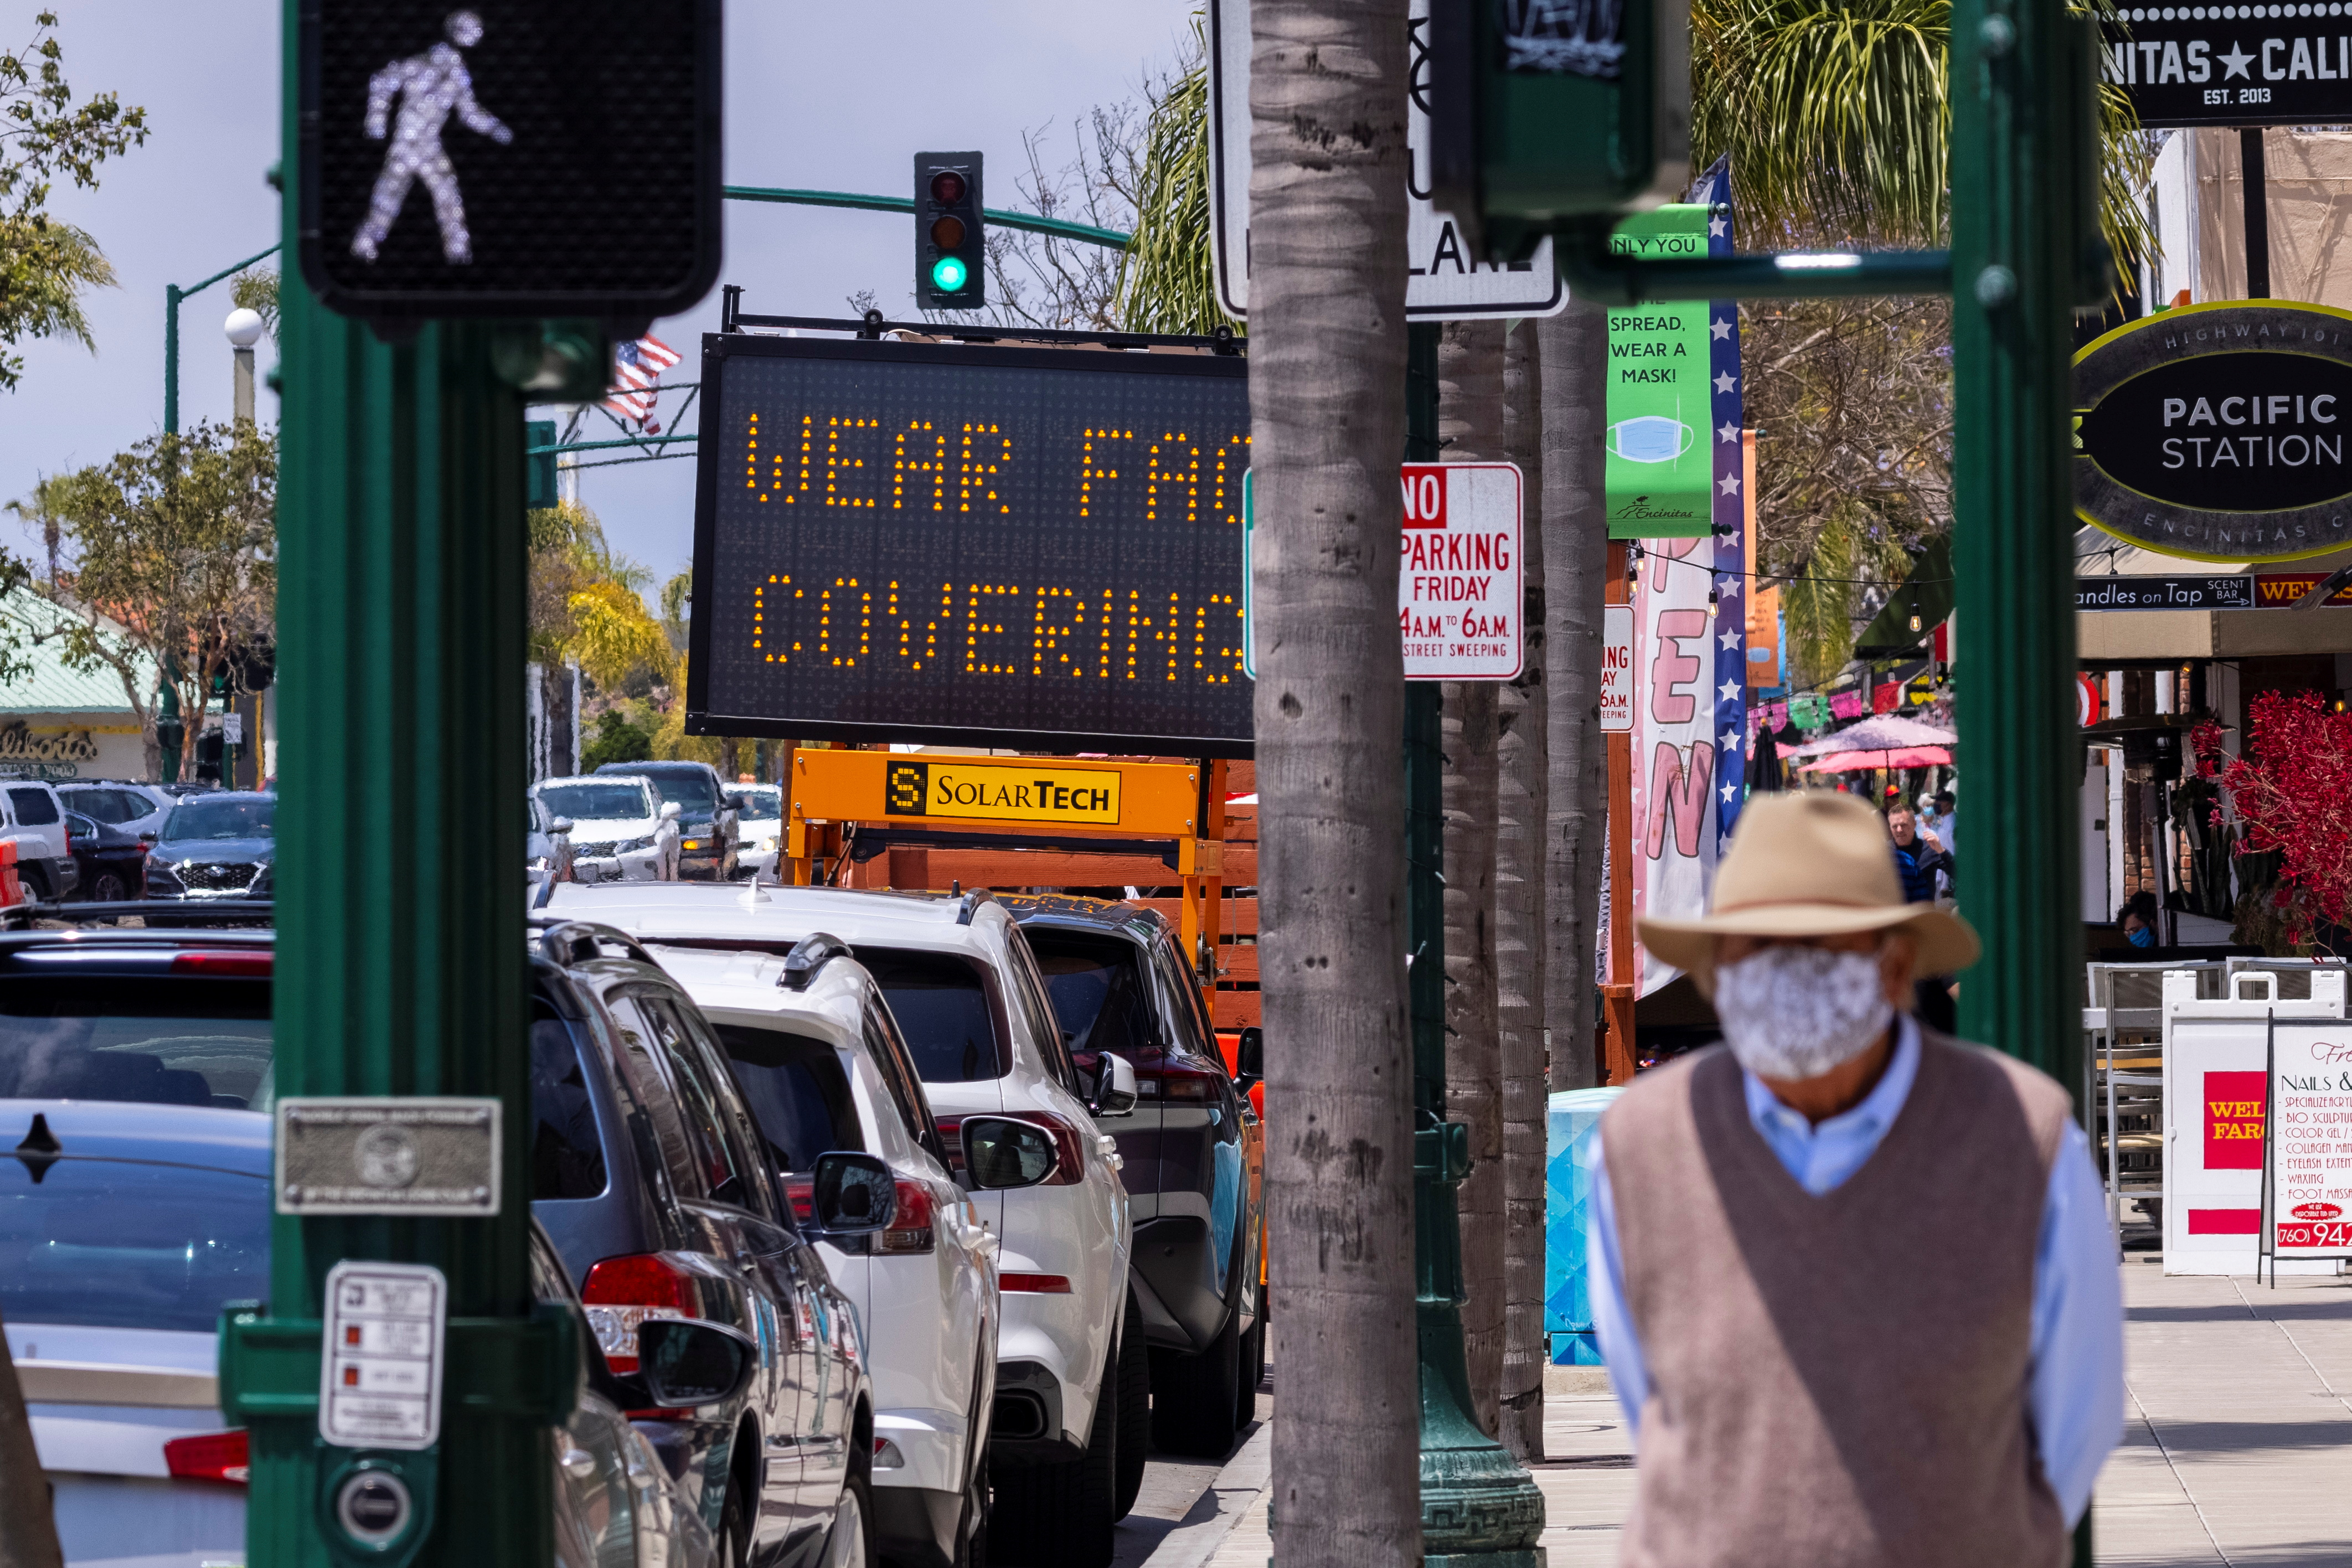 A man walks down a street in Encinitas, as California Governor Gavin Newsom said his state would keep its mask order in place for another month, in California, U.S., May 17, 2021. REUTERS/Mike Blake